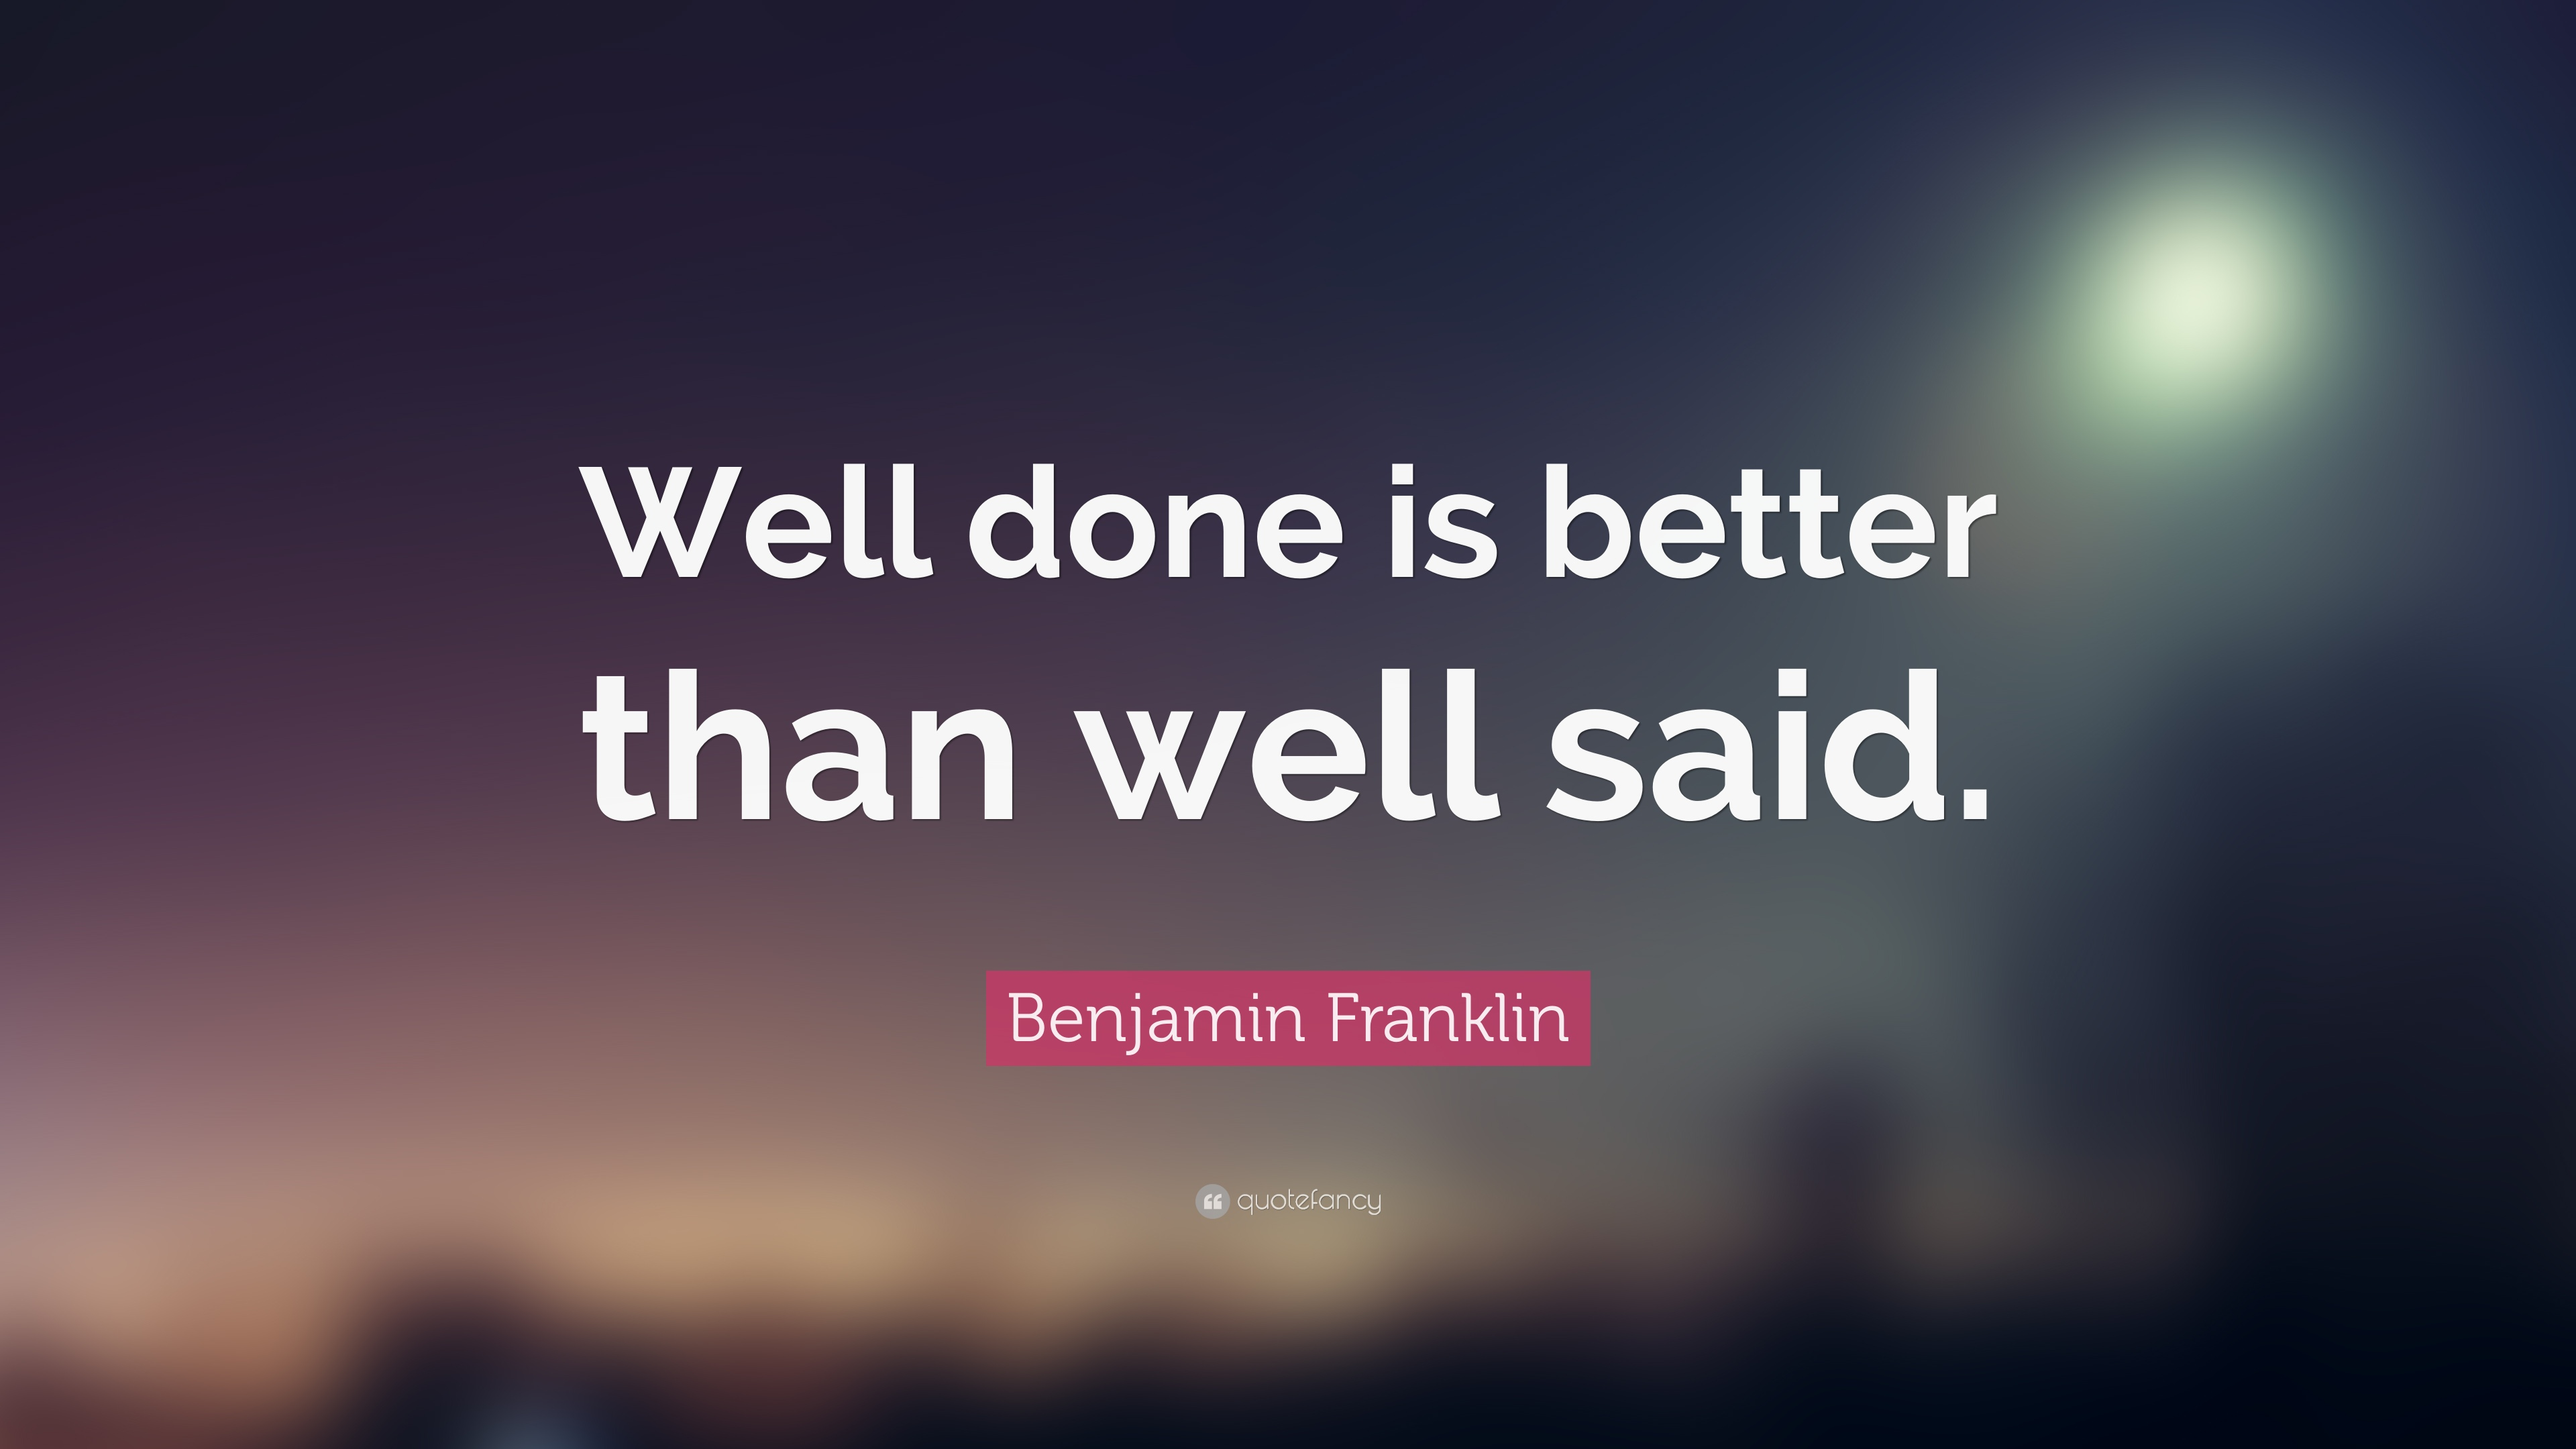 Benjamin Franklin Quotes Wallpaper Benjamin Franklin Quote Well Done Is Better Than Well